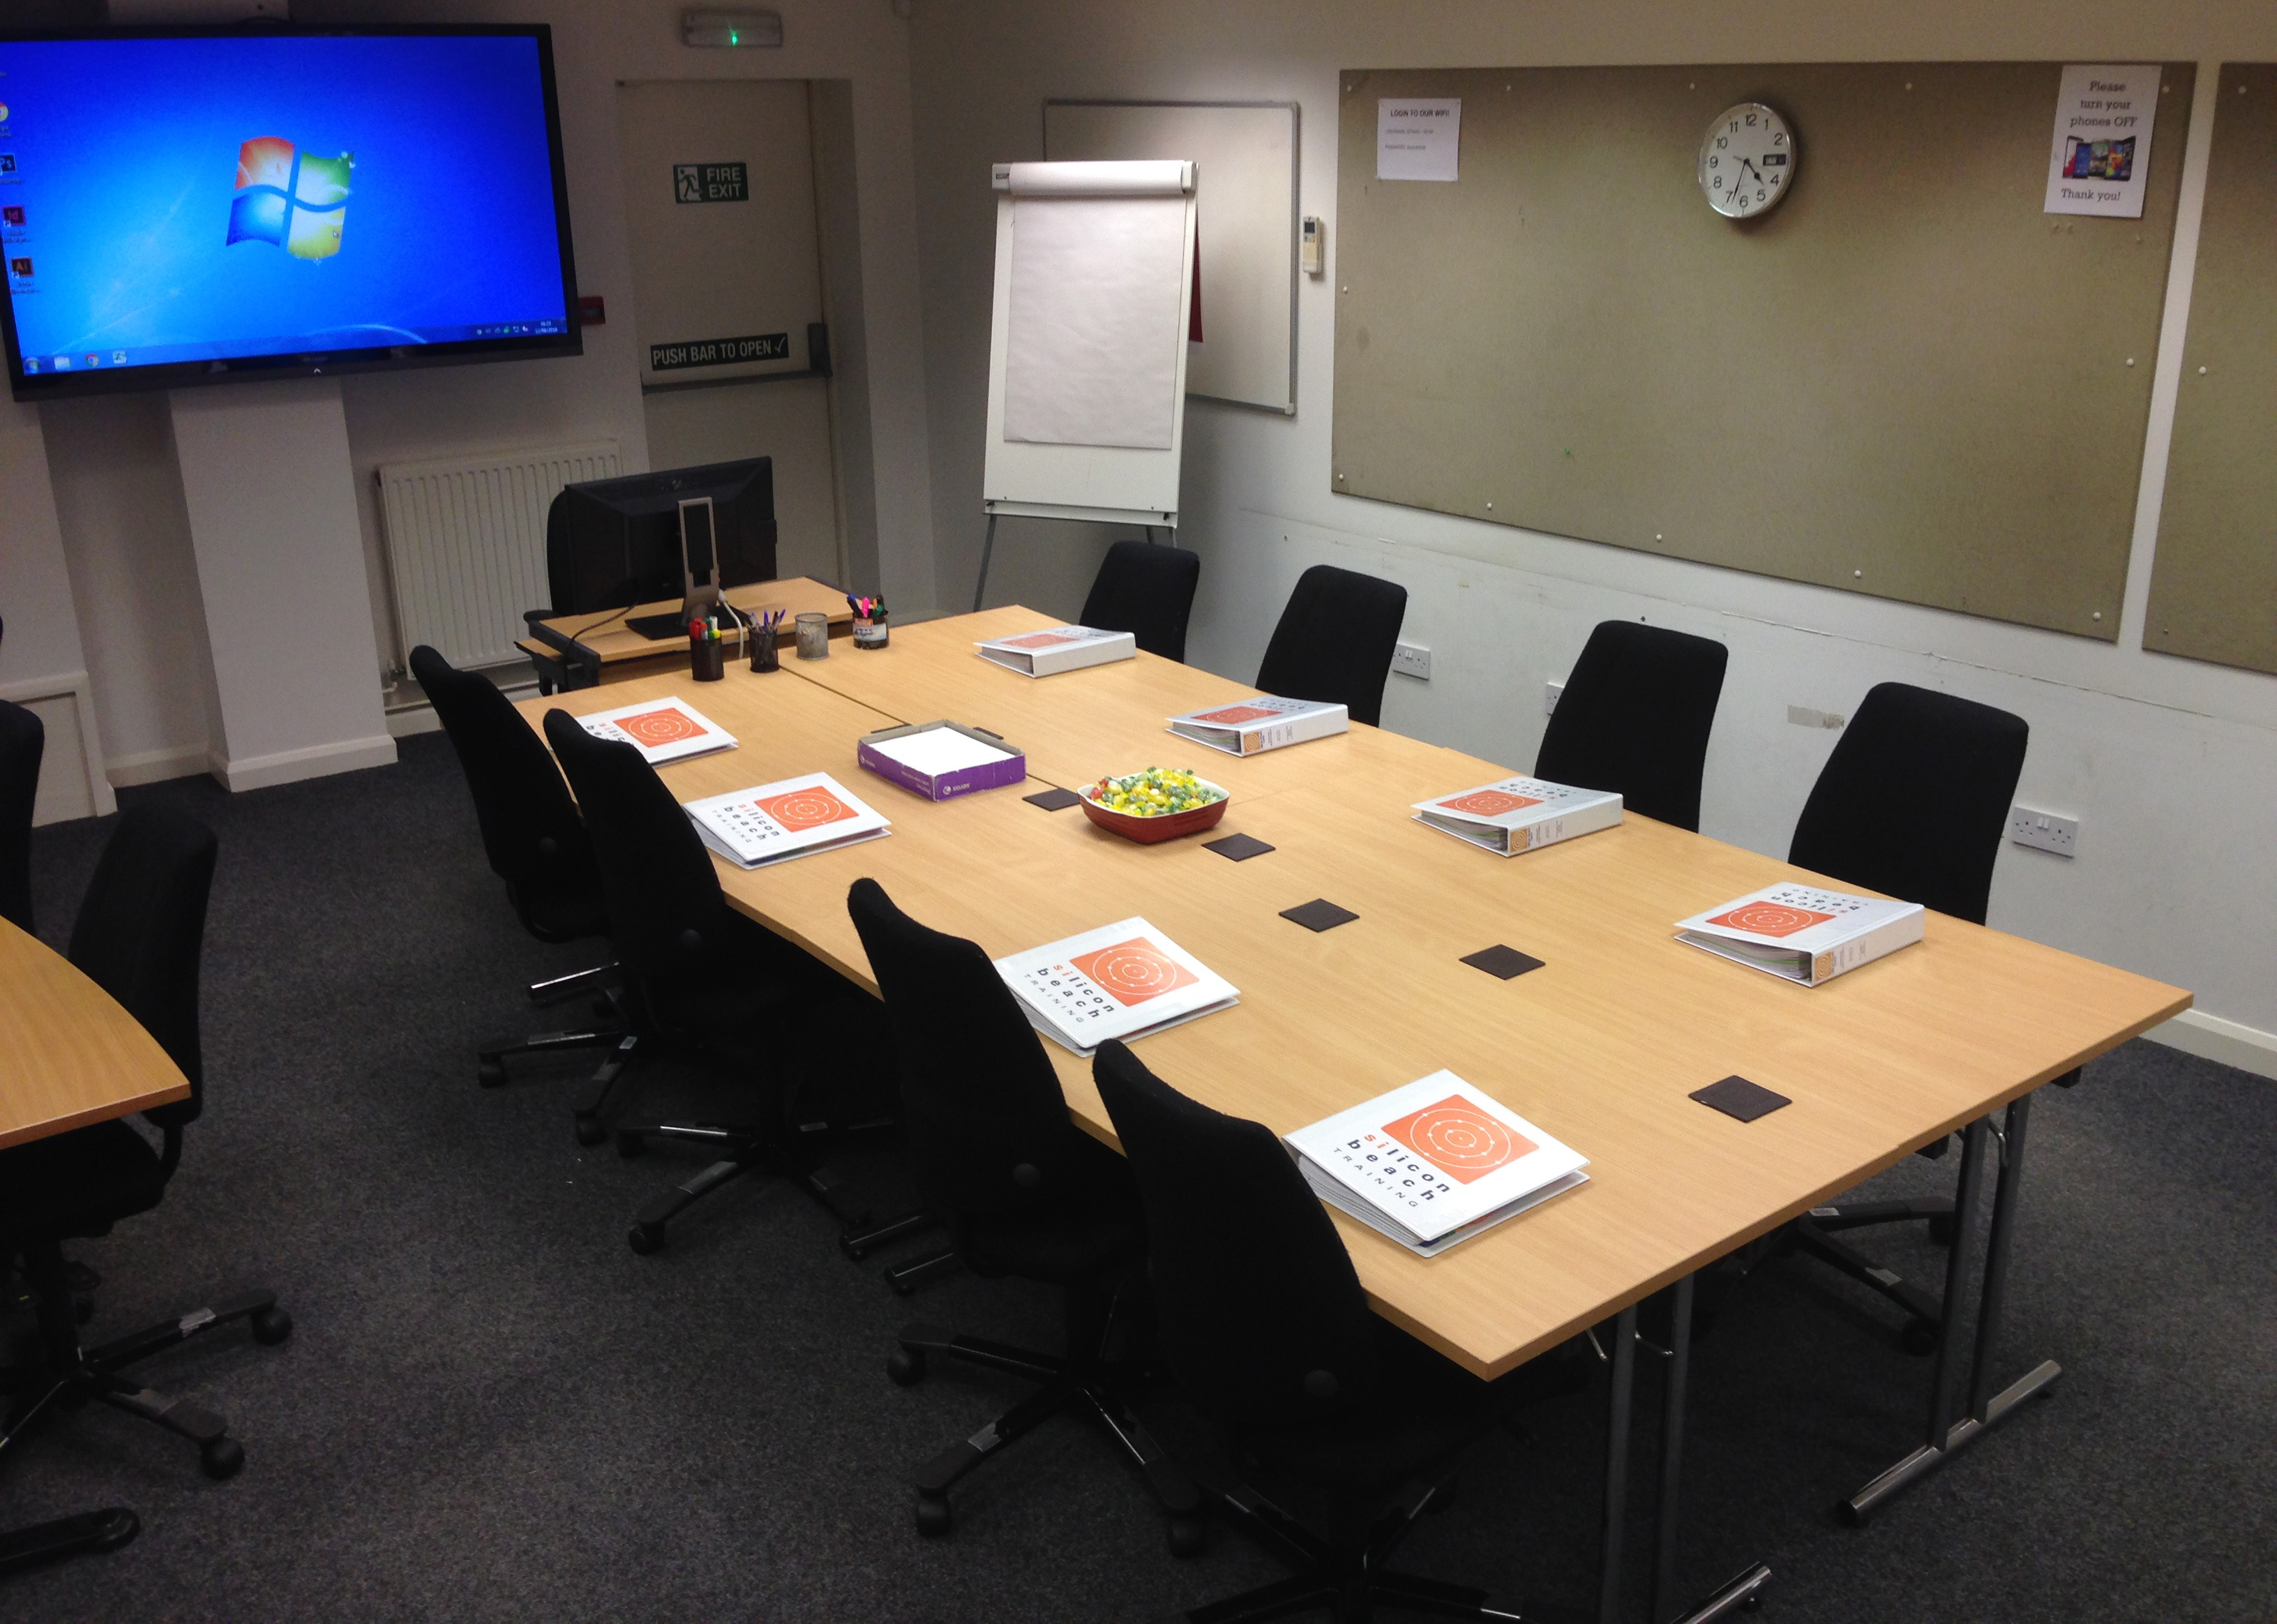 Training room showing it in conference/ boardroom layout